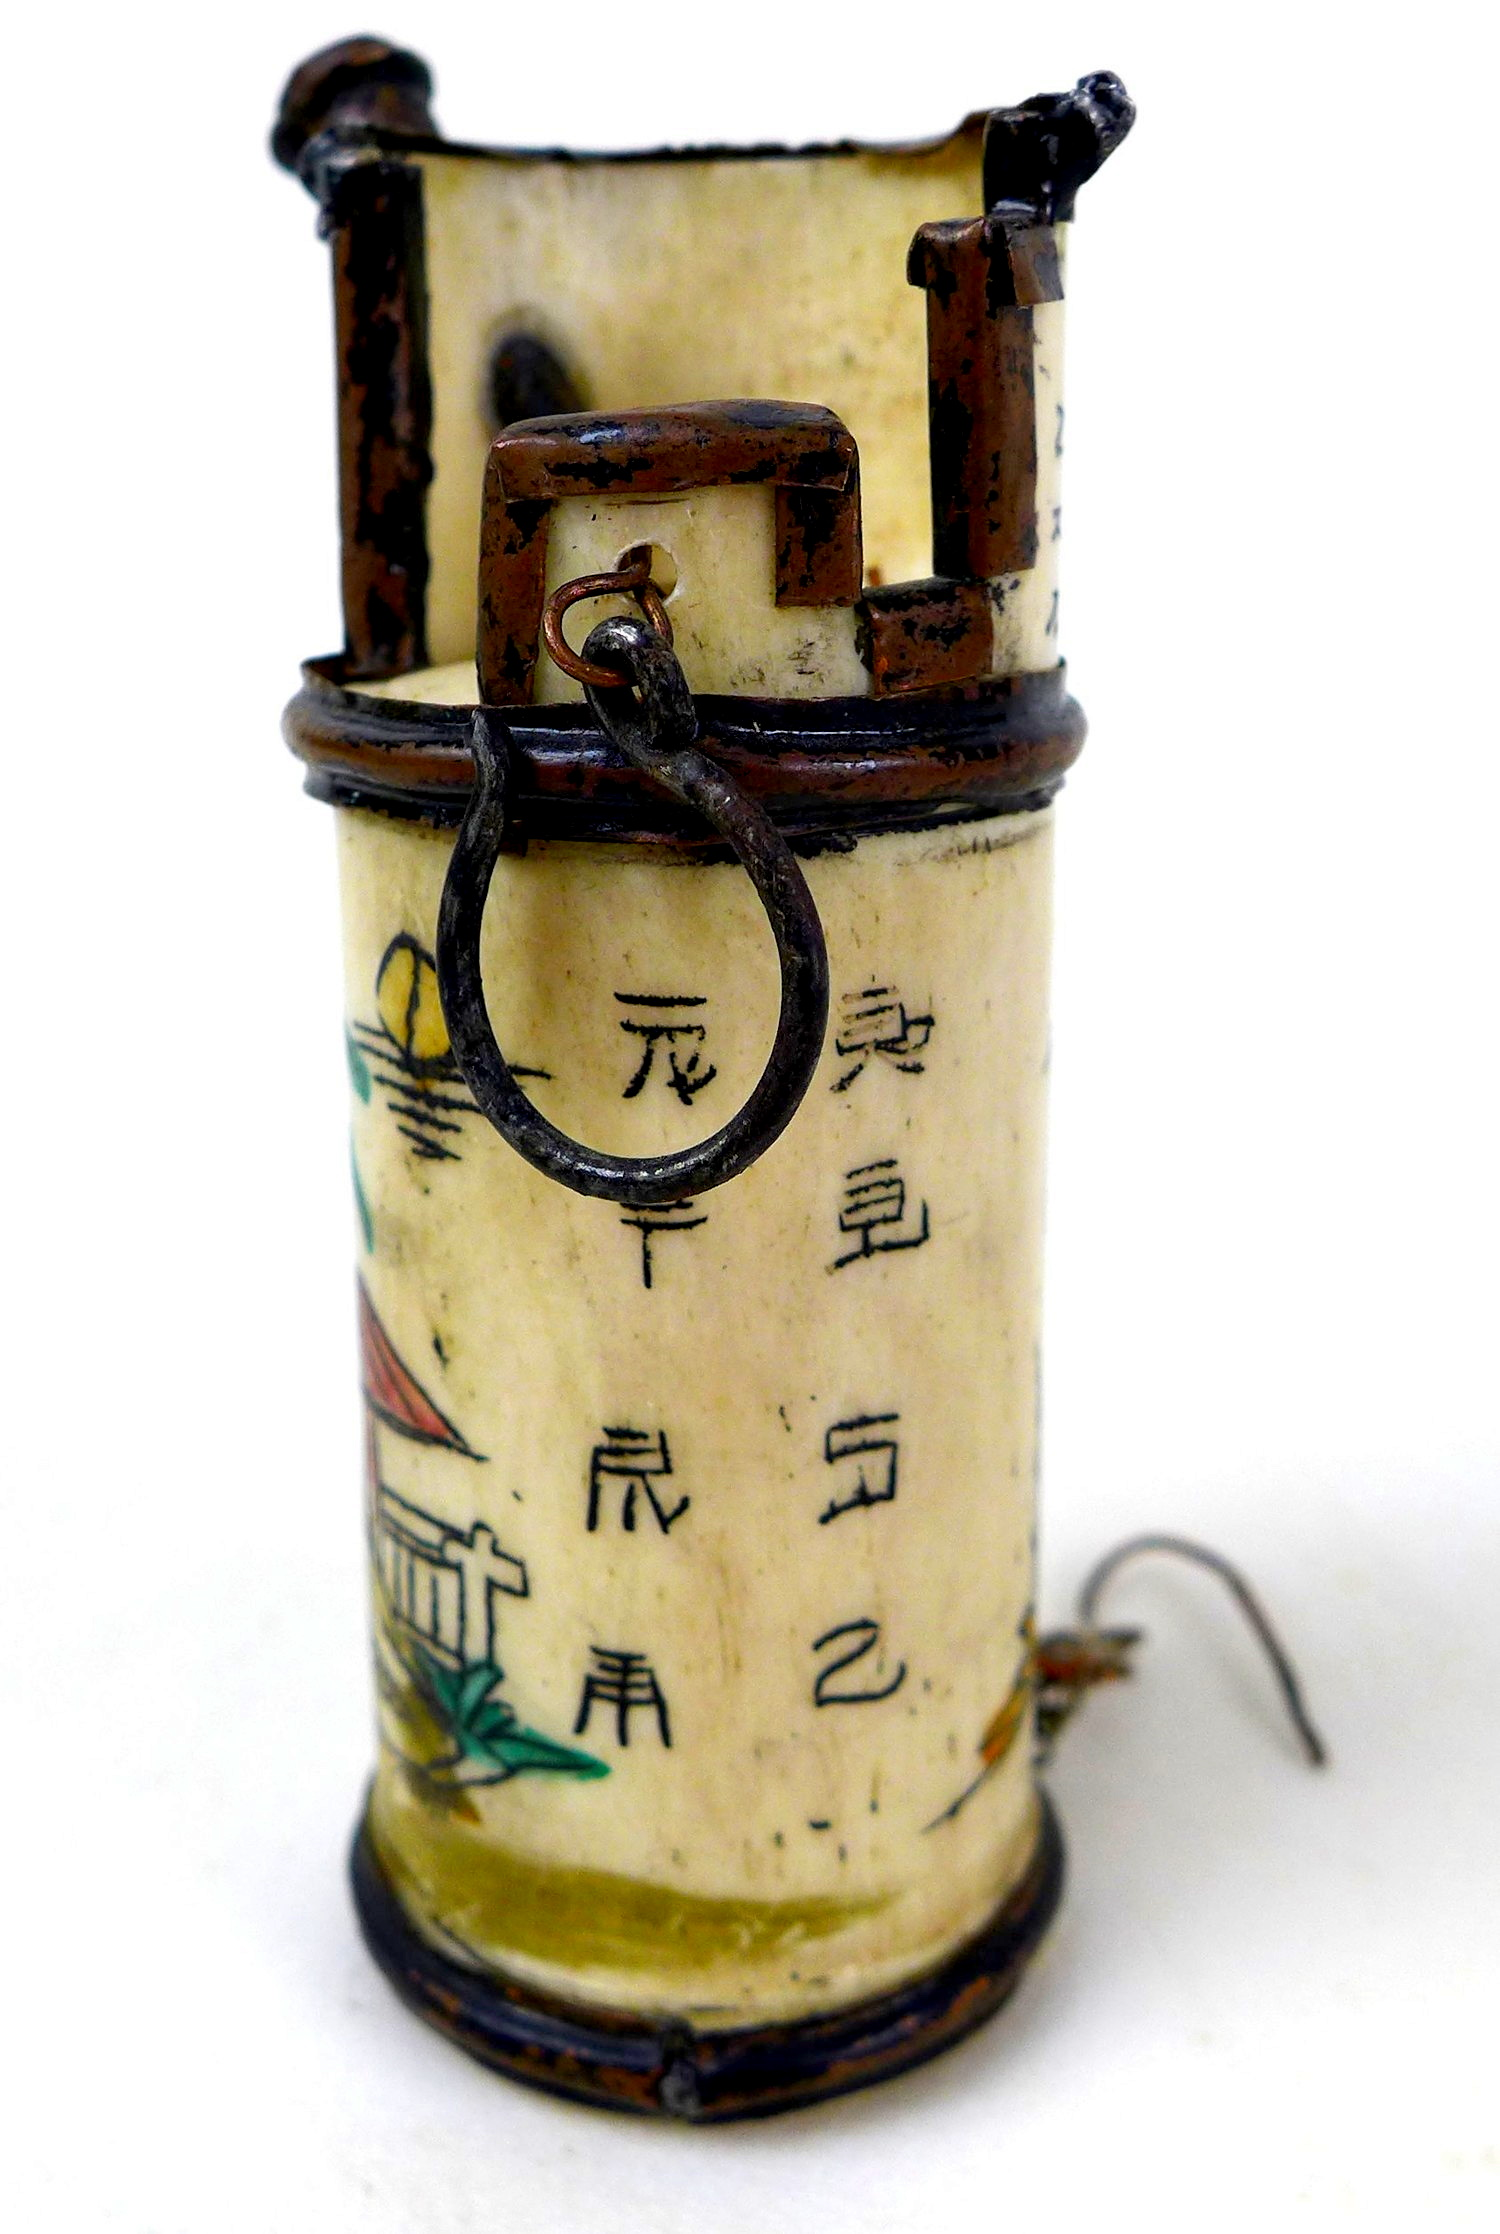 A group of three Chinese opium pipes, the largest with white blossom on black enamels decoration, - Image 5 of 6